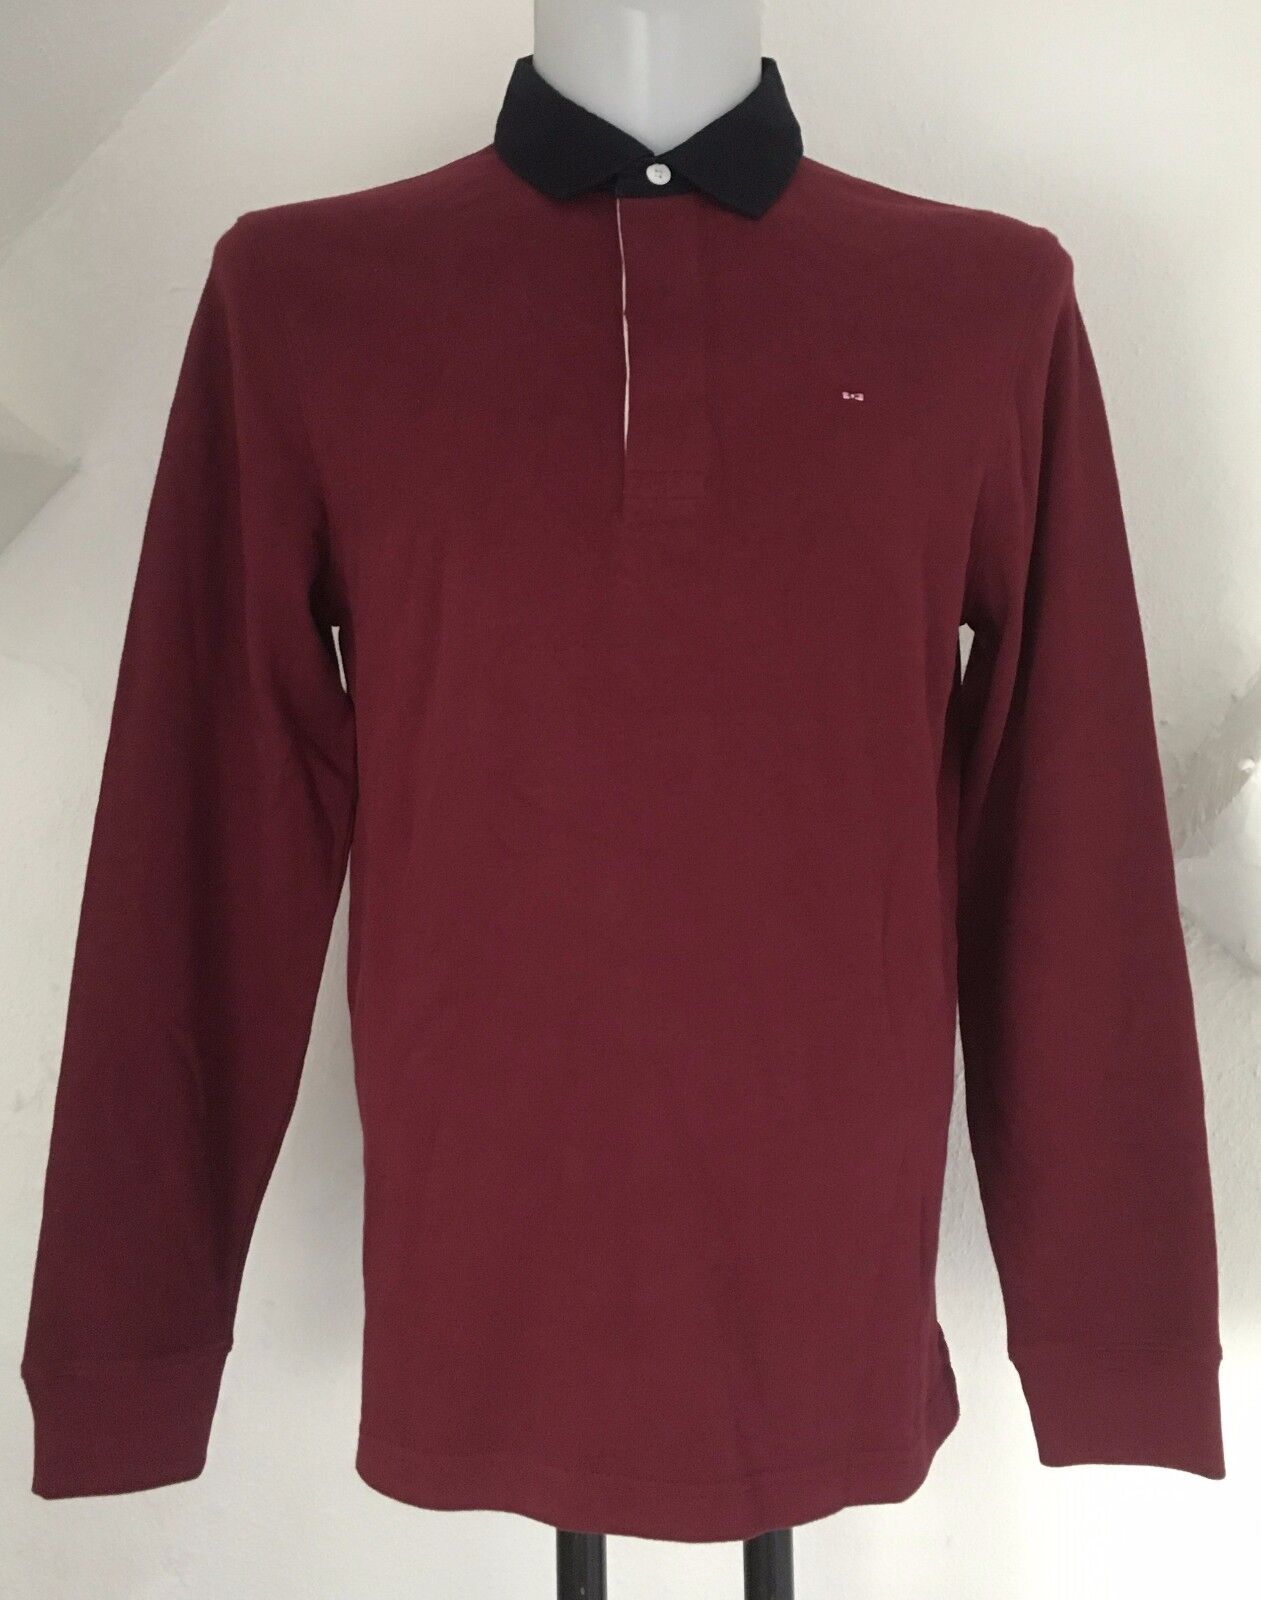 BURGUNDY L S RUGBY JERSEY BY EDEN PARK SIZE MEN'S MEDIUM BRAND NEW WITH TAGS